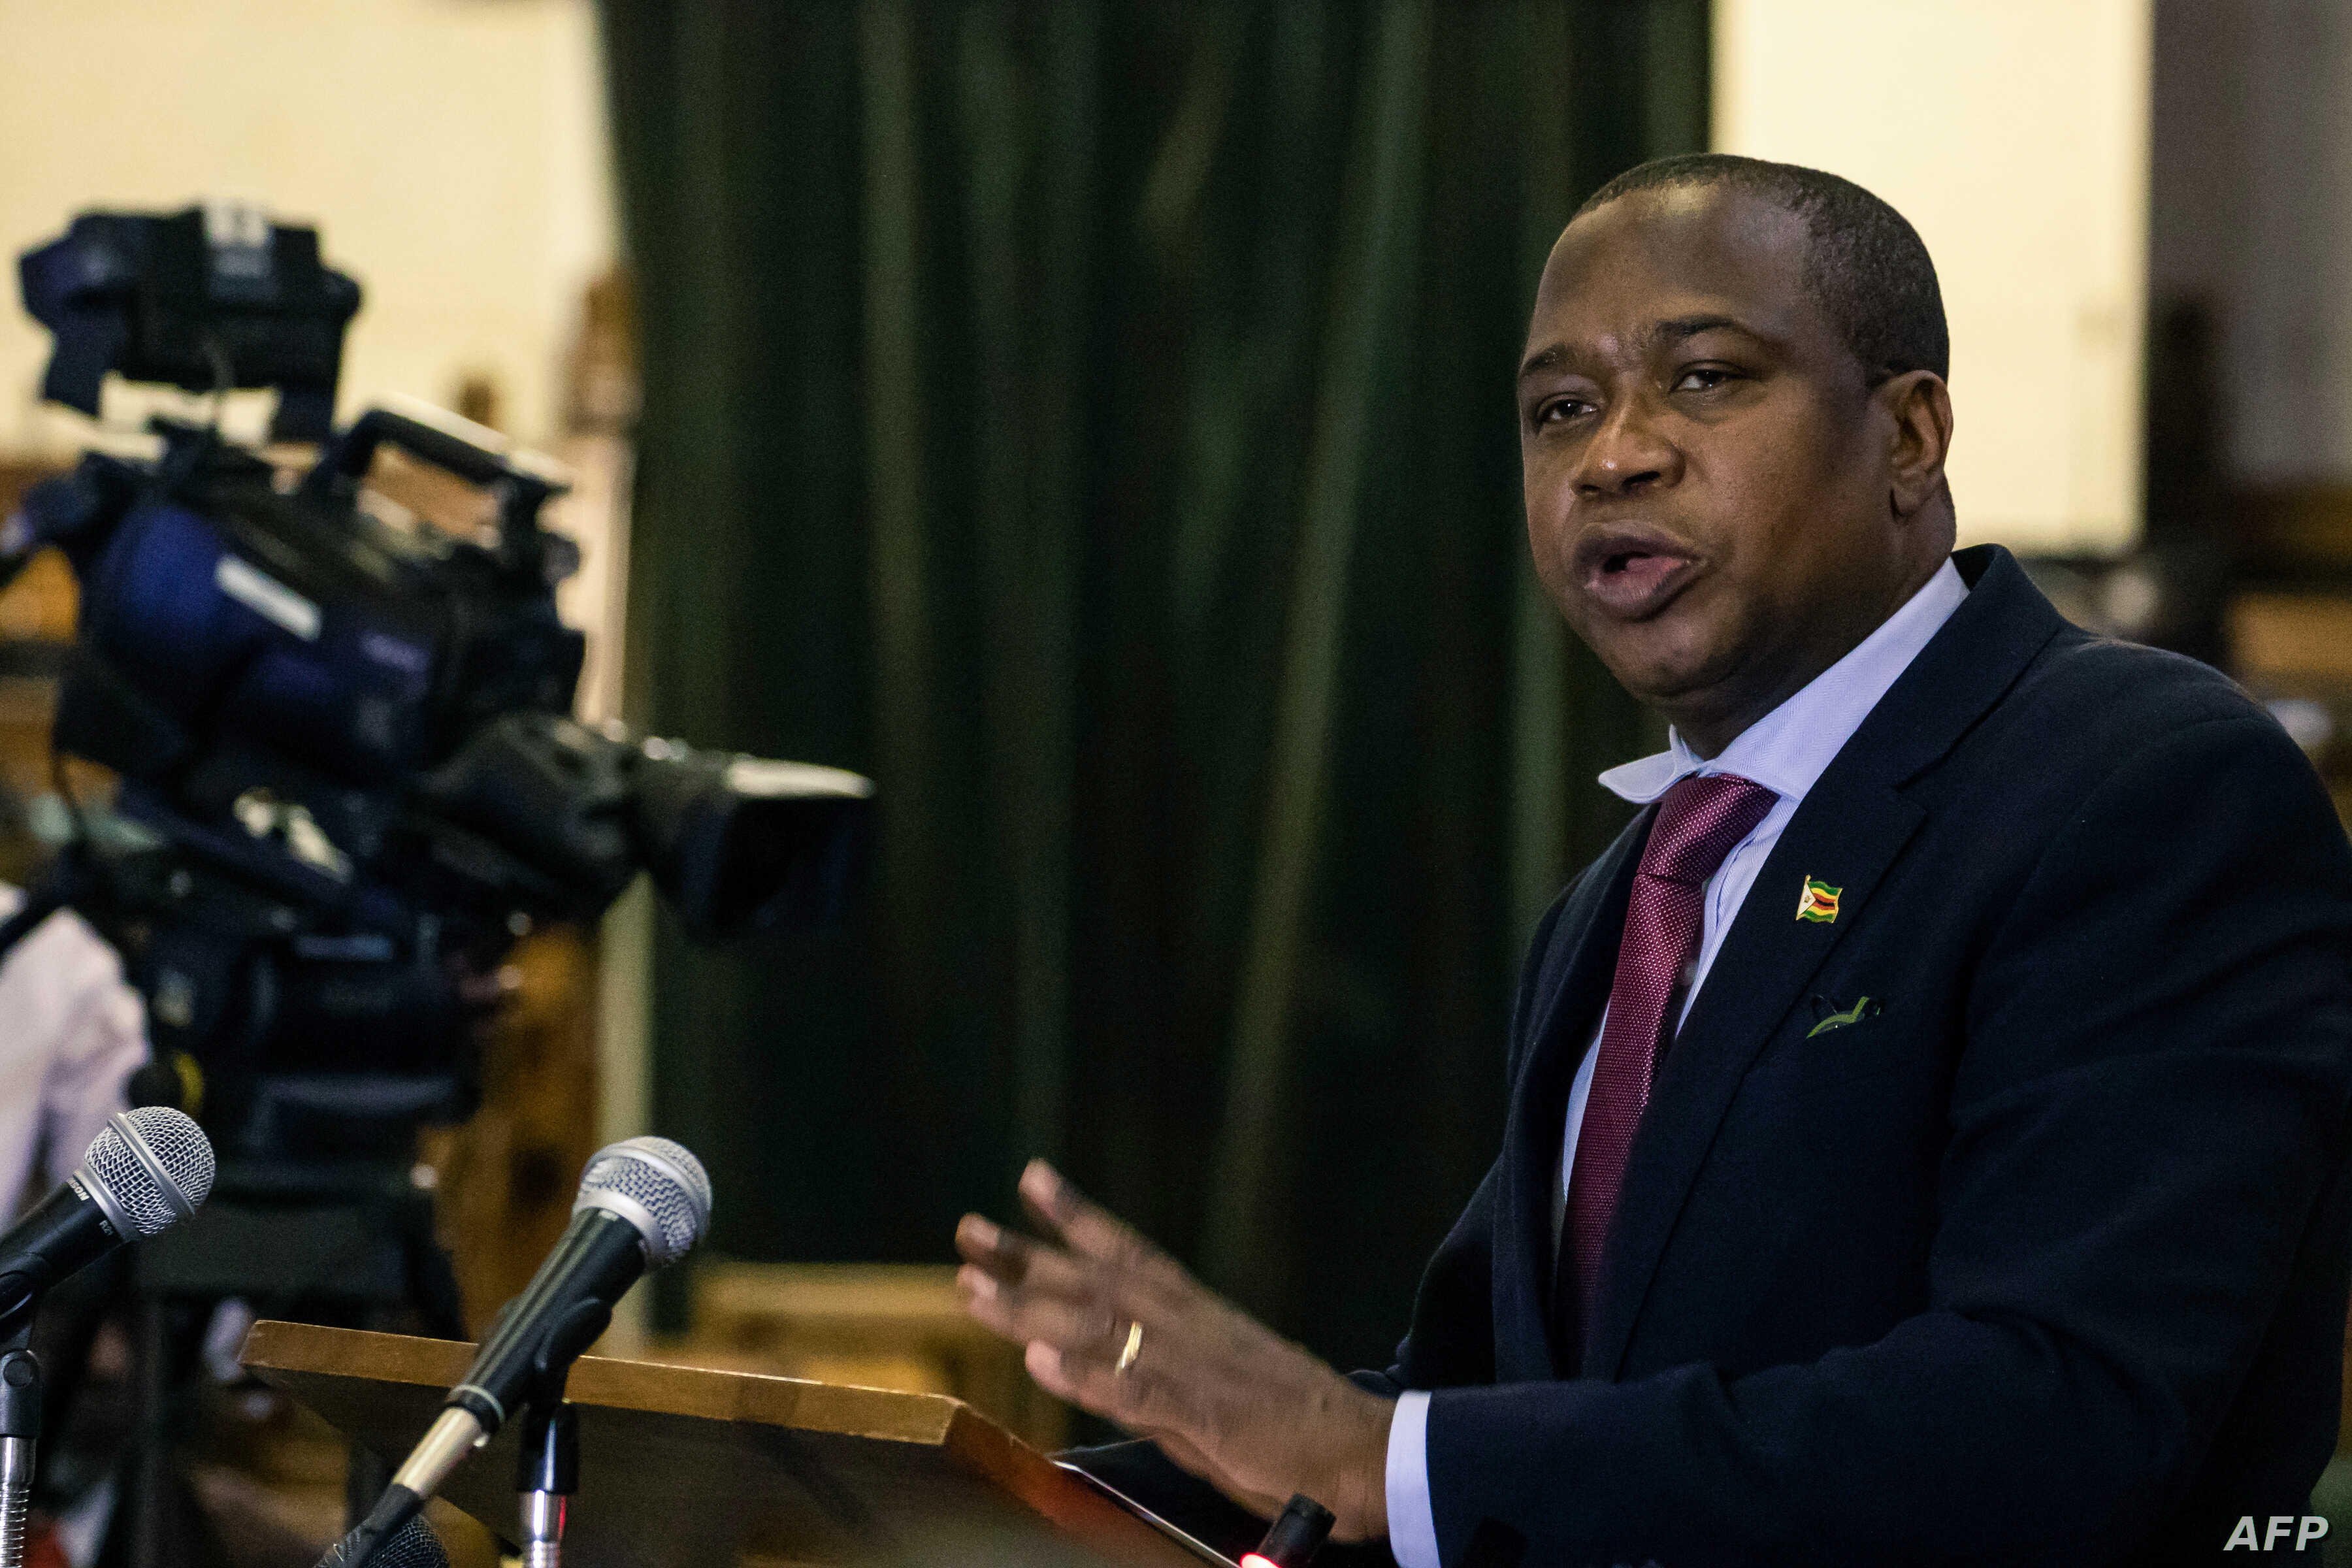 Zimbabwe's Finance Minister Mthuli Ncube delivers a speech to present his mid-term budget statement on Aug. 1, 2019 in Harare.